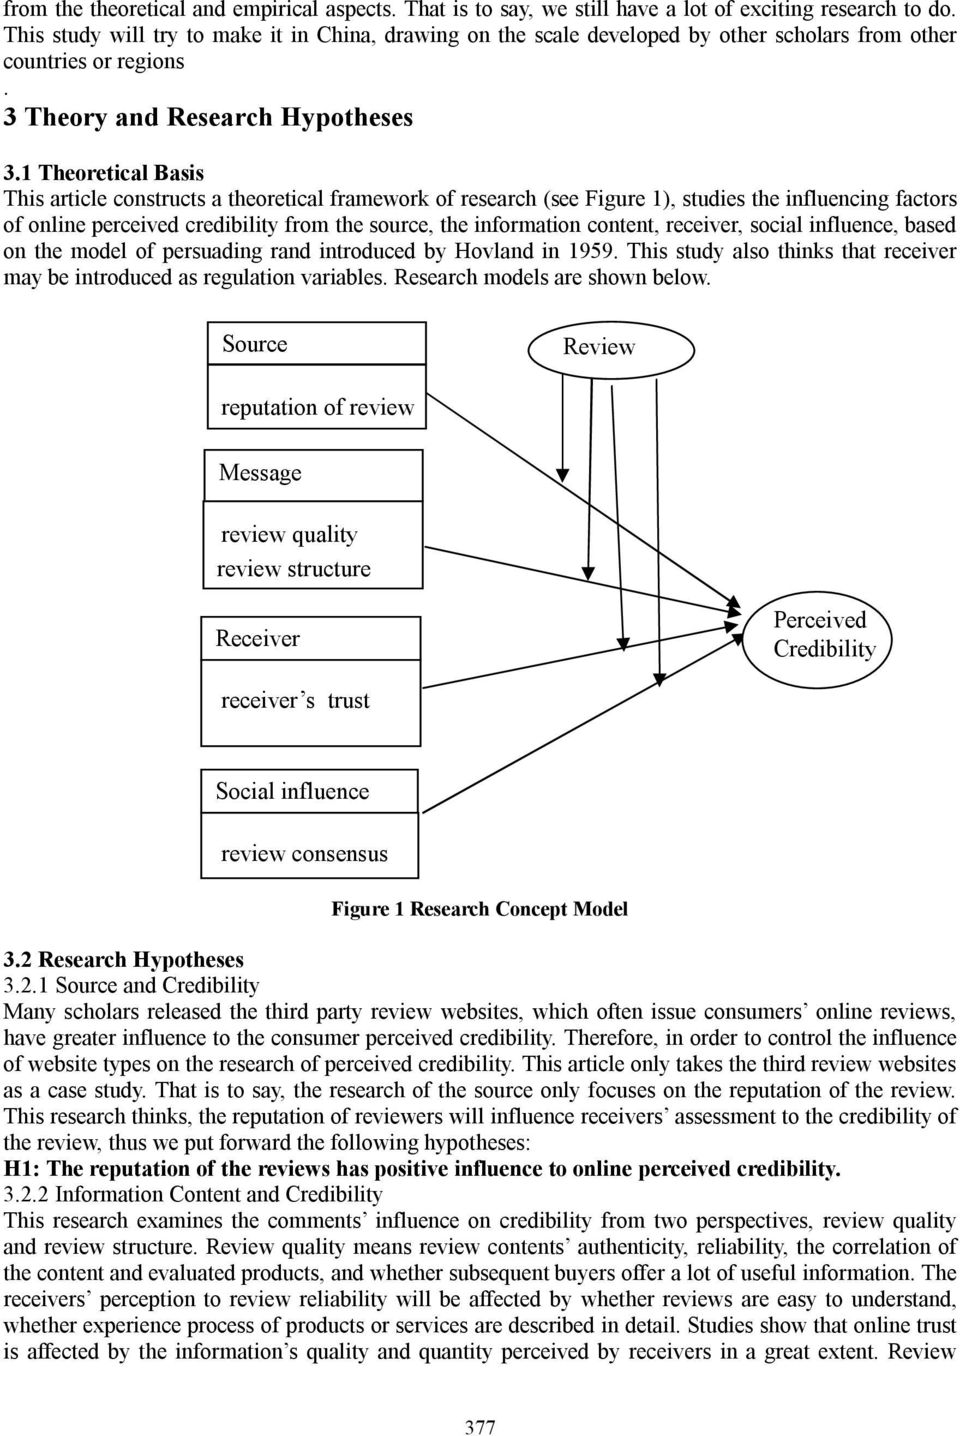 1 Theoretical Basis This article constructs a theoretical framework of research (see Figure 1), studies the influencing factors of online perceived credibility from the source, the information